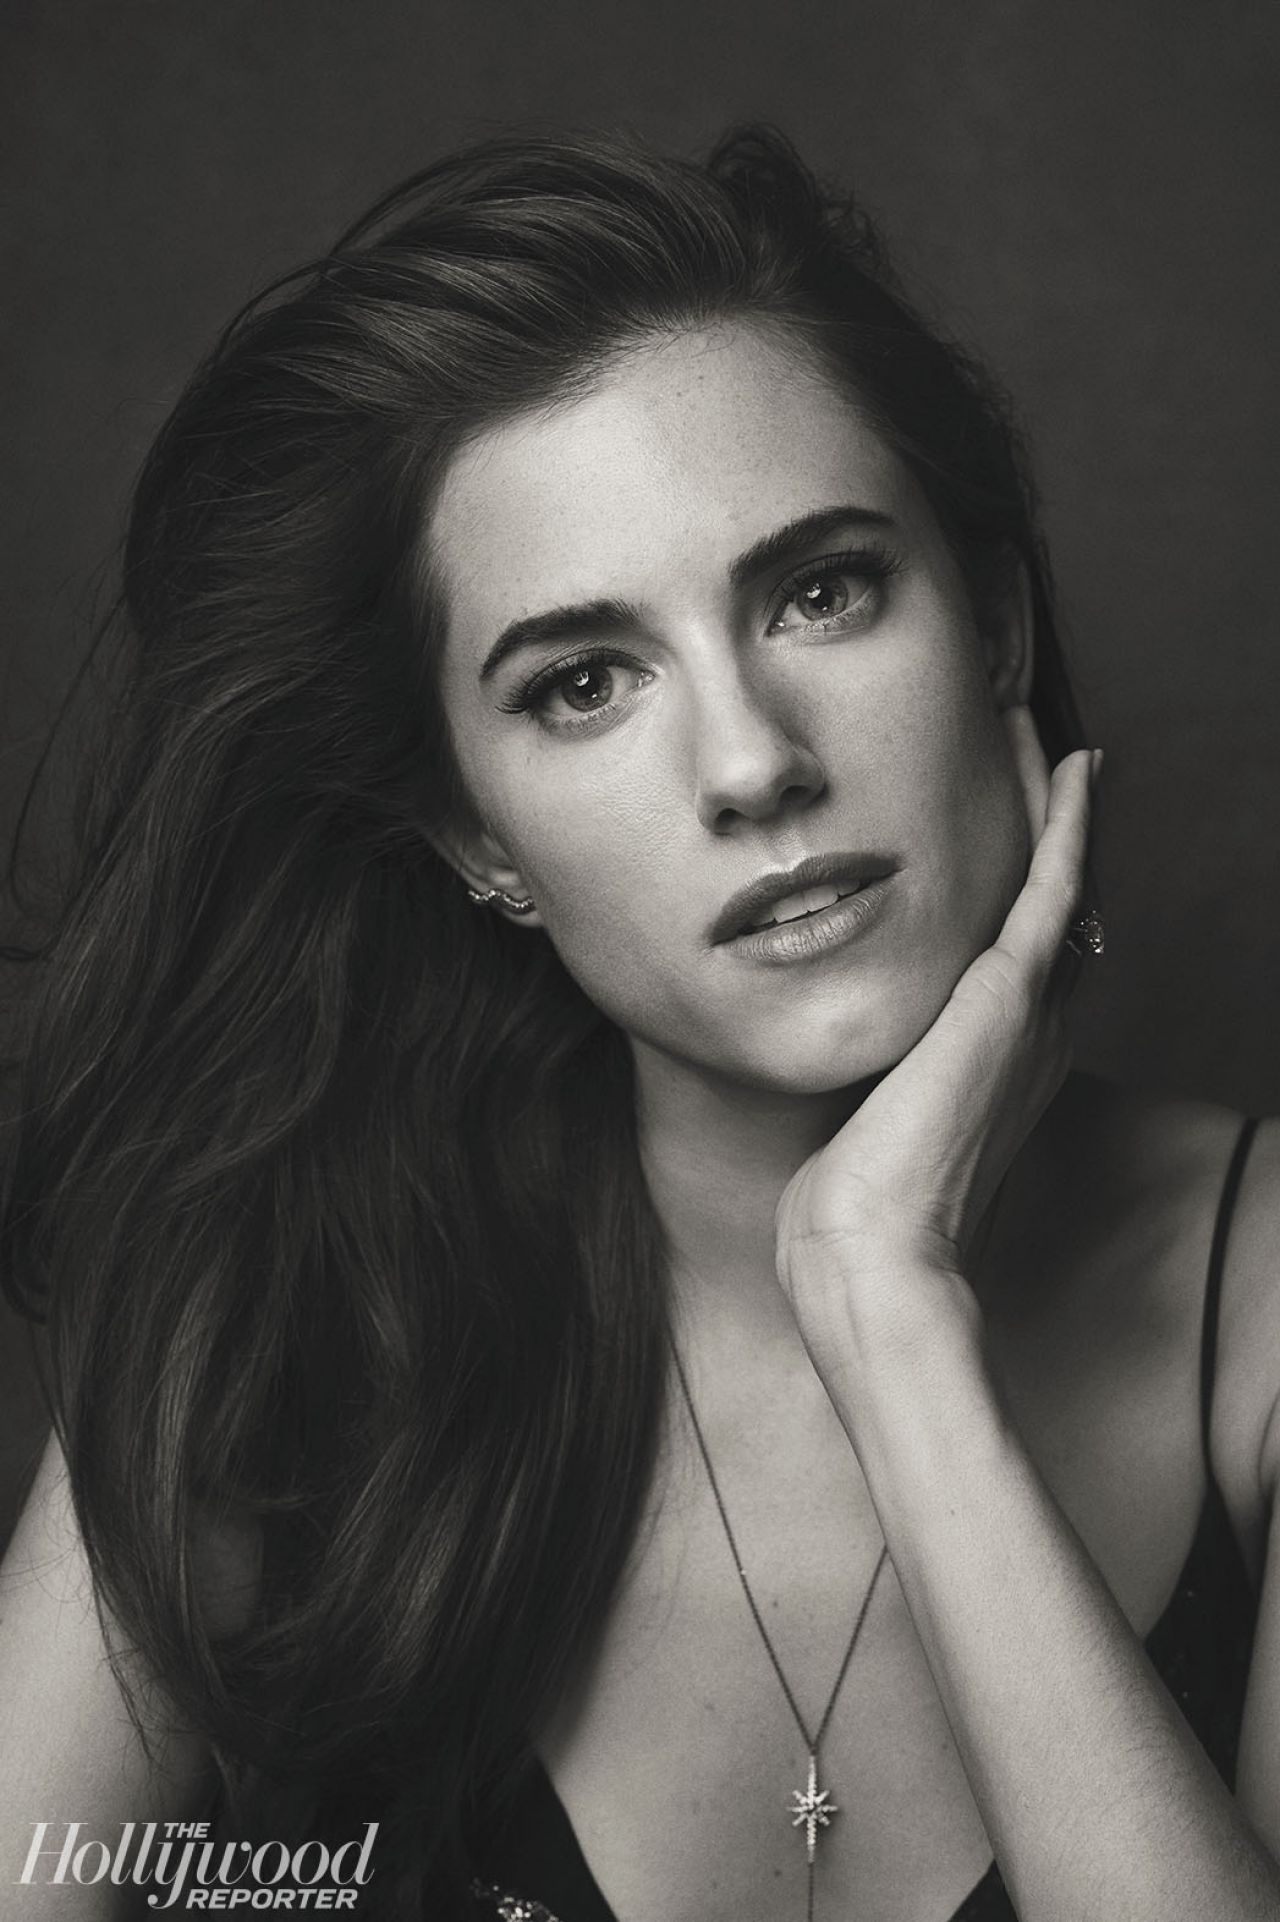 Allison Williams Photoshoot For The Hollywood Reporter